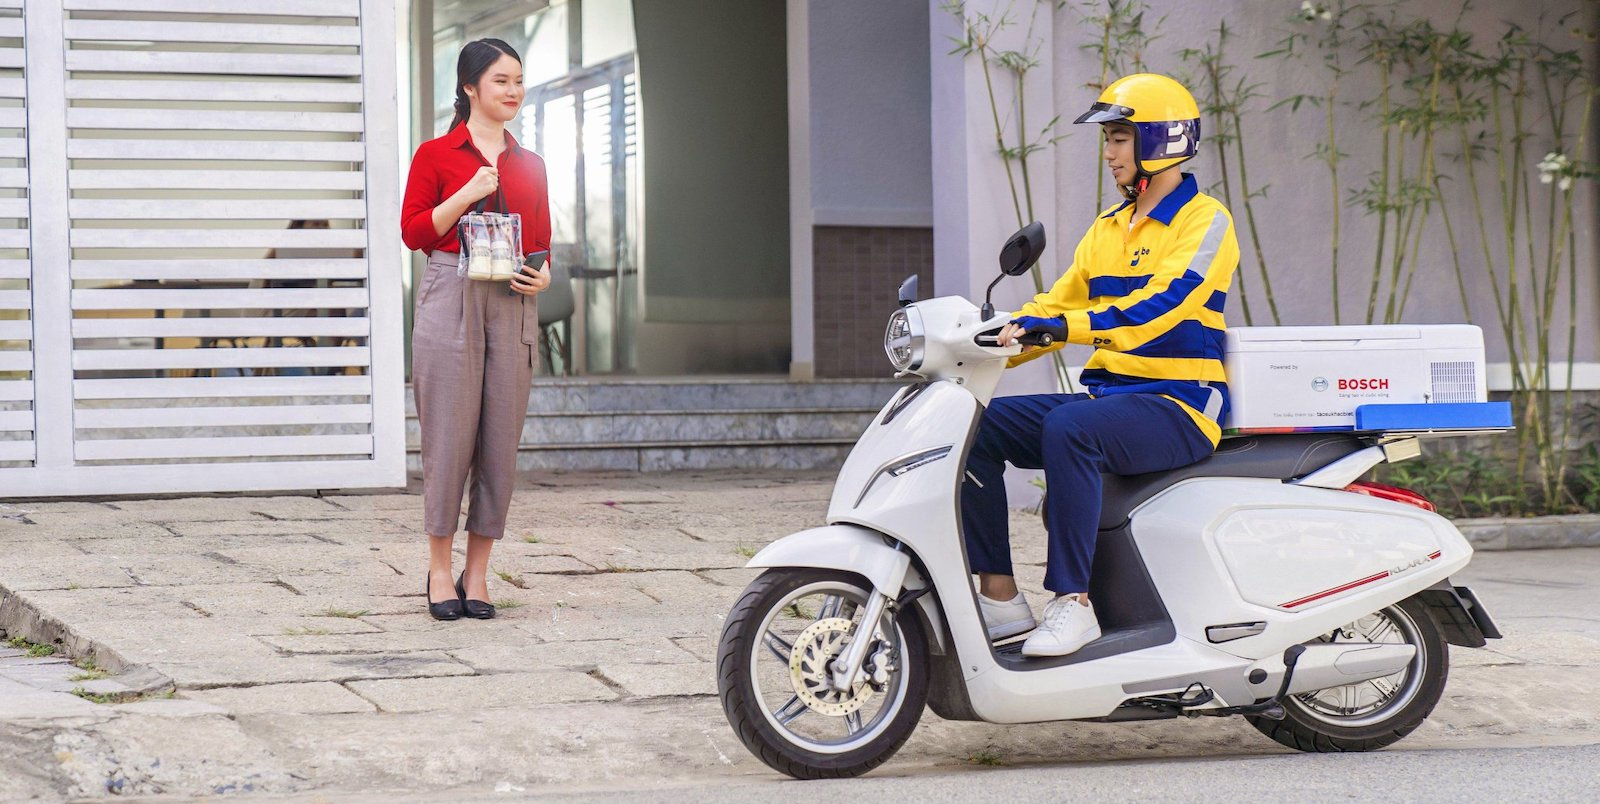 Image of a be motorbike picking up a delivery